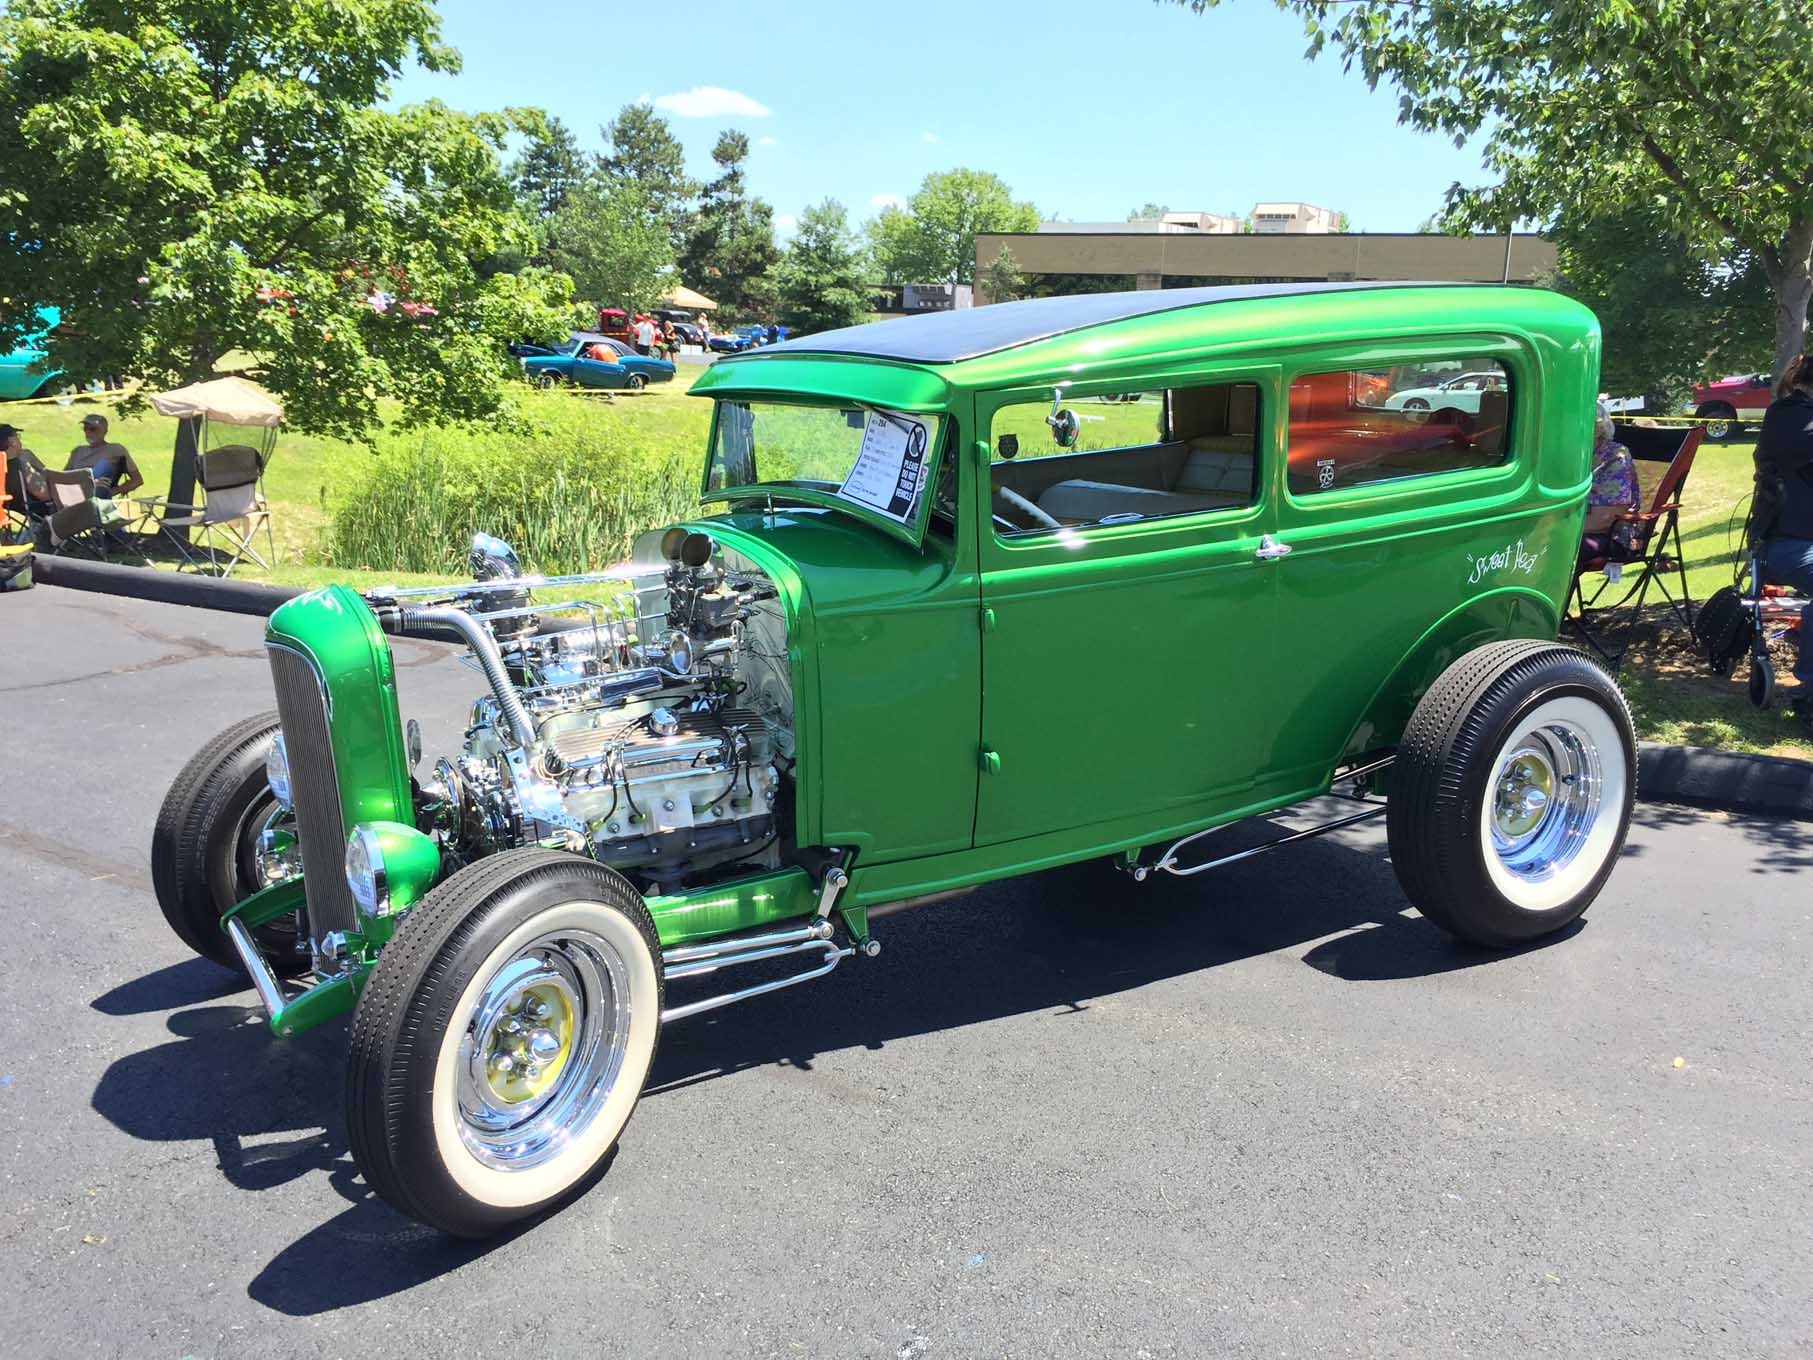 Jim Brady with his 1930 Ford highboy sedan took home STREET RODDER Editor's Choice Award for his Pontiac-powered Model A.